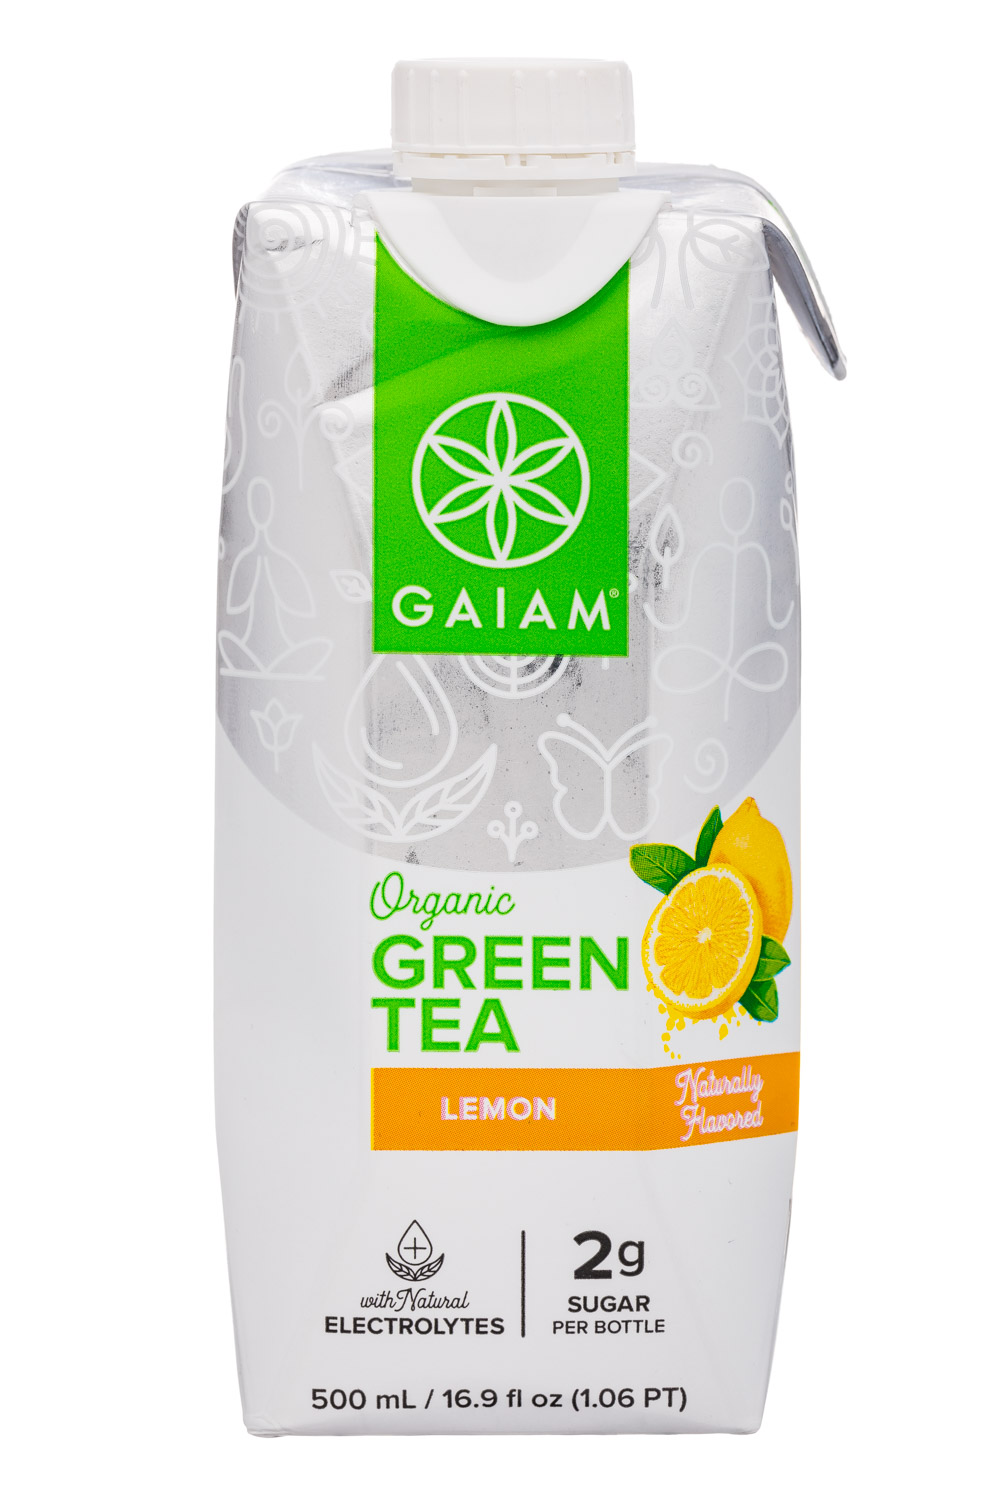 Organic Green Tea - Lemon